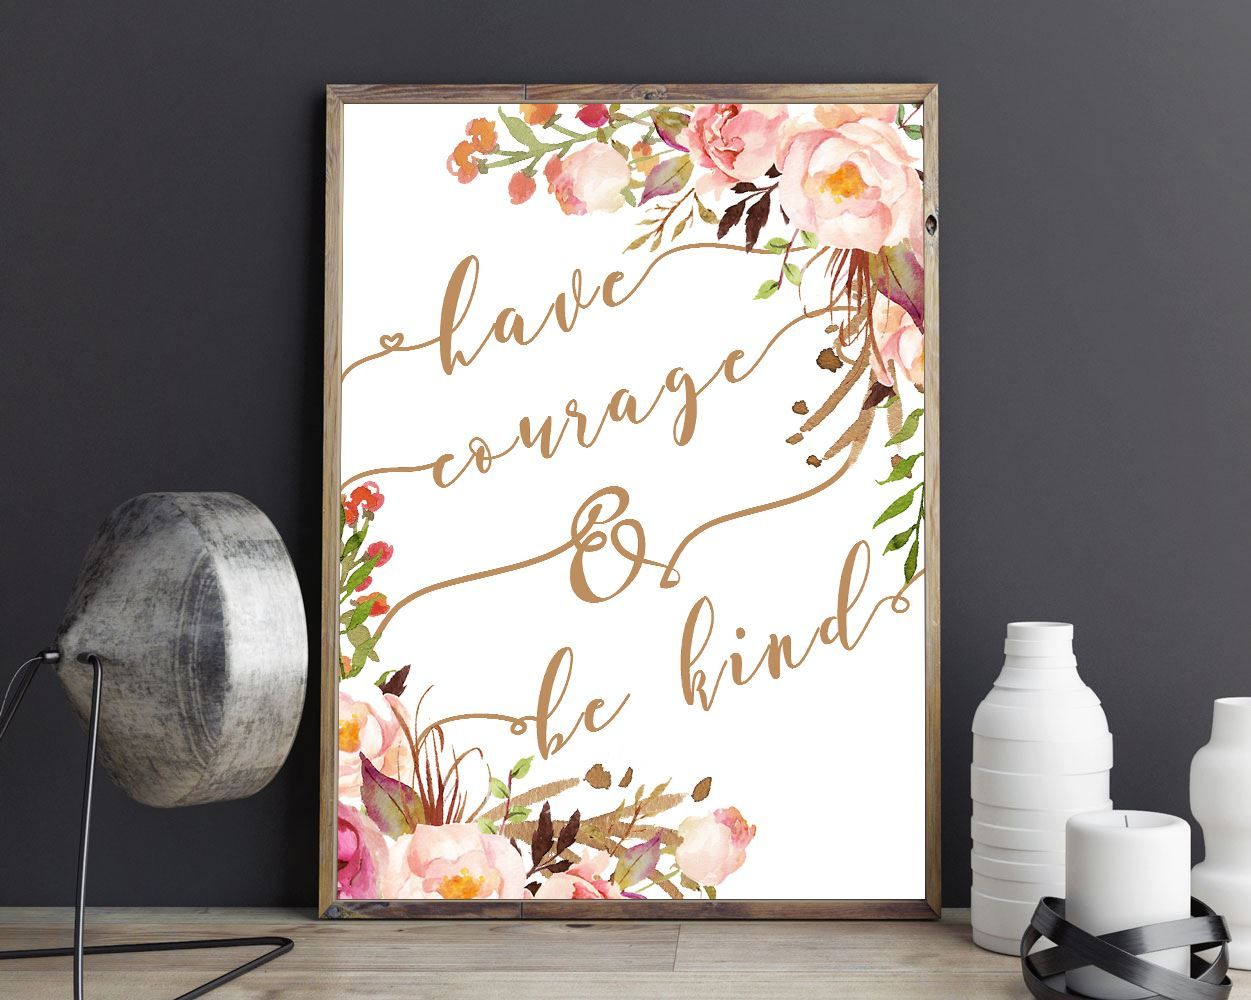 Wall Art Have Courage And Be Kind Digital Print Have Courage And Be Kind Poster Art Have Courage And Be Digital Wall Art Printable Wall Art Photo Wall Display